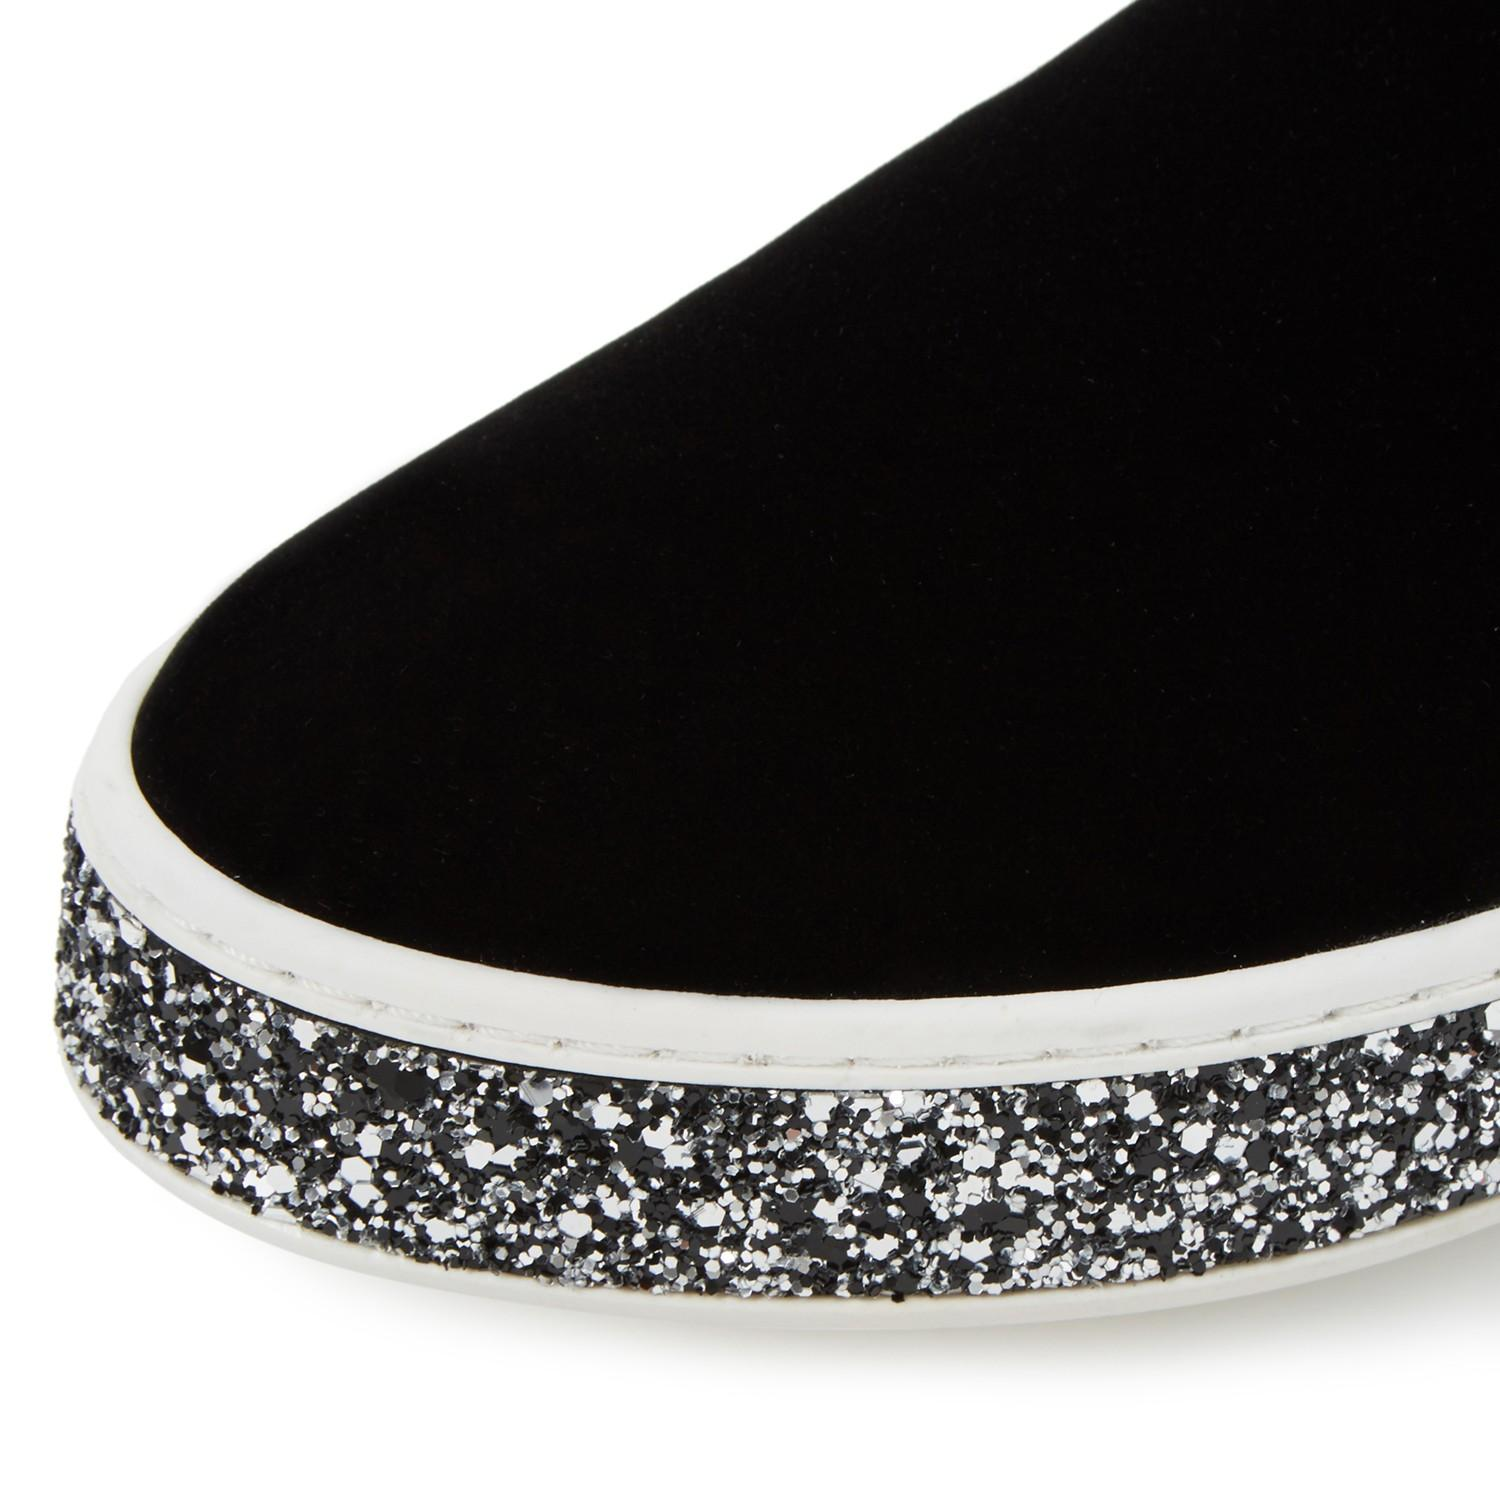 Dune Denim Exchange Glitter Sole Slip On Shoes in Black